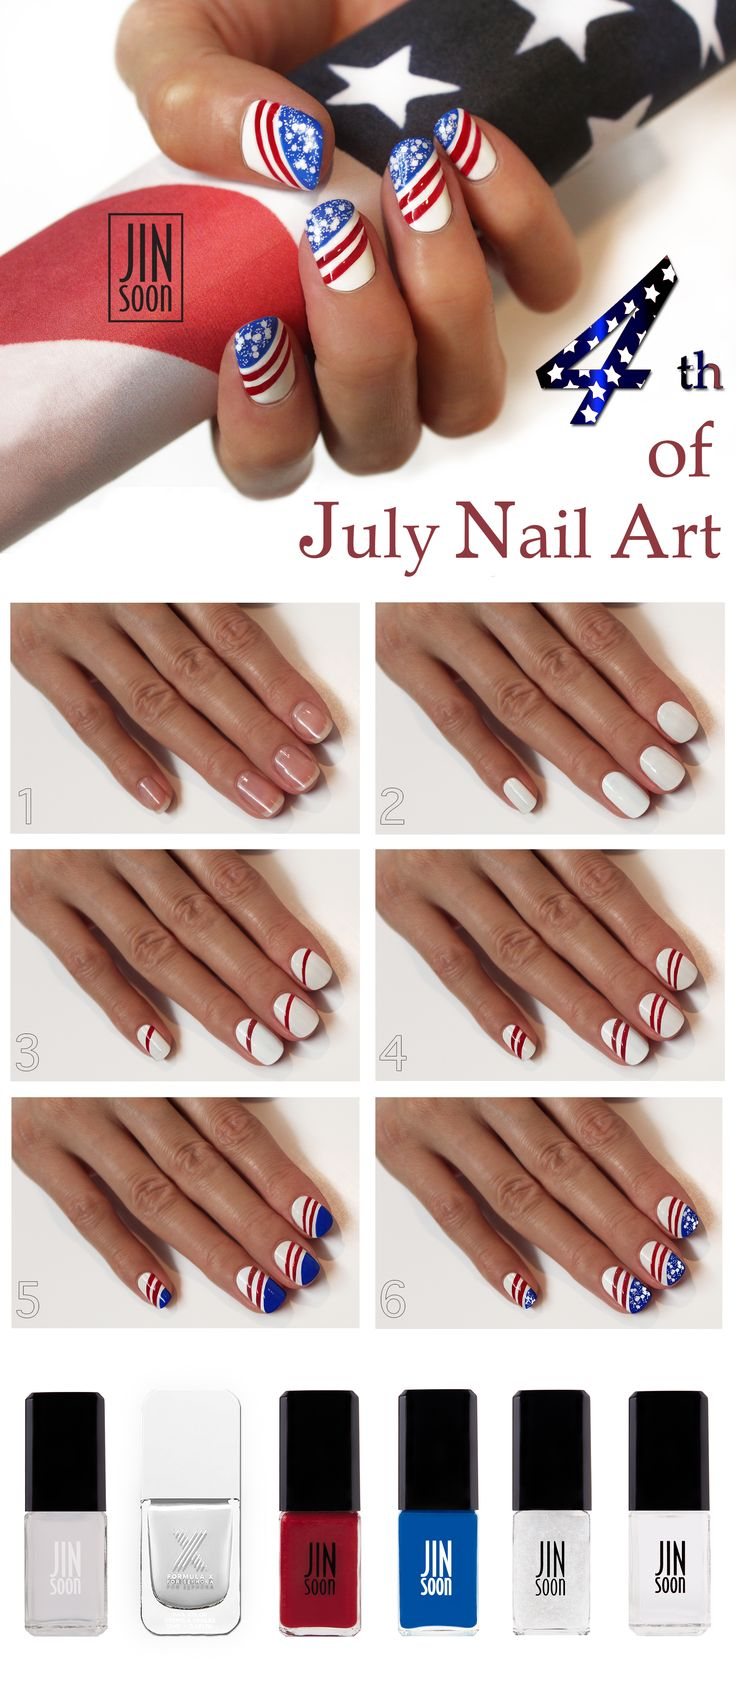 35 best DIY JINsoon How to NailArt images on Pinterest | Nailart ...